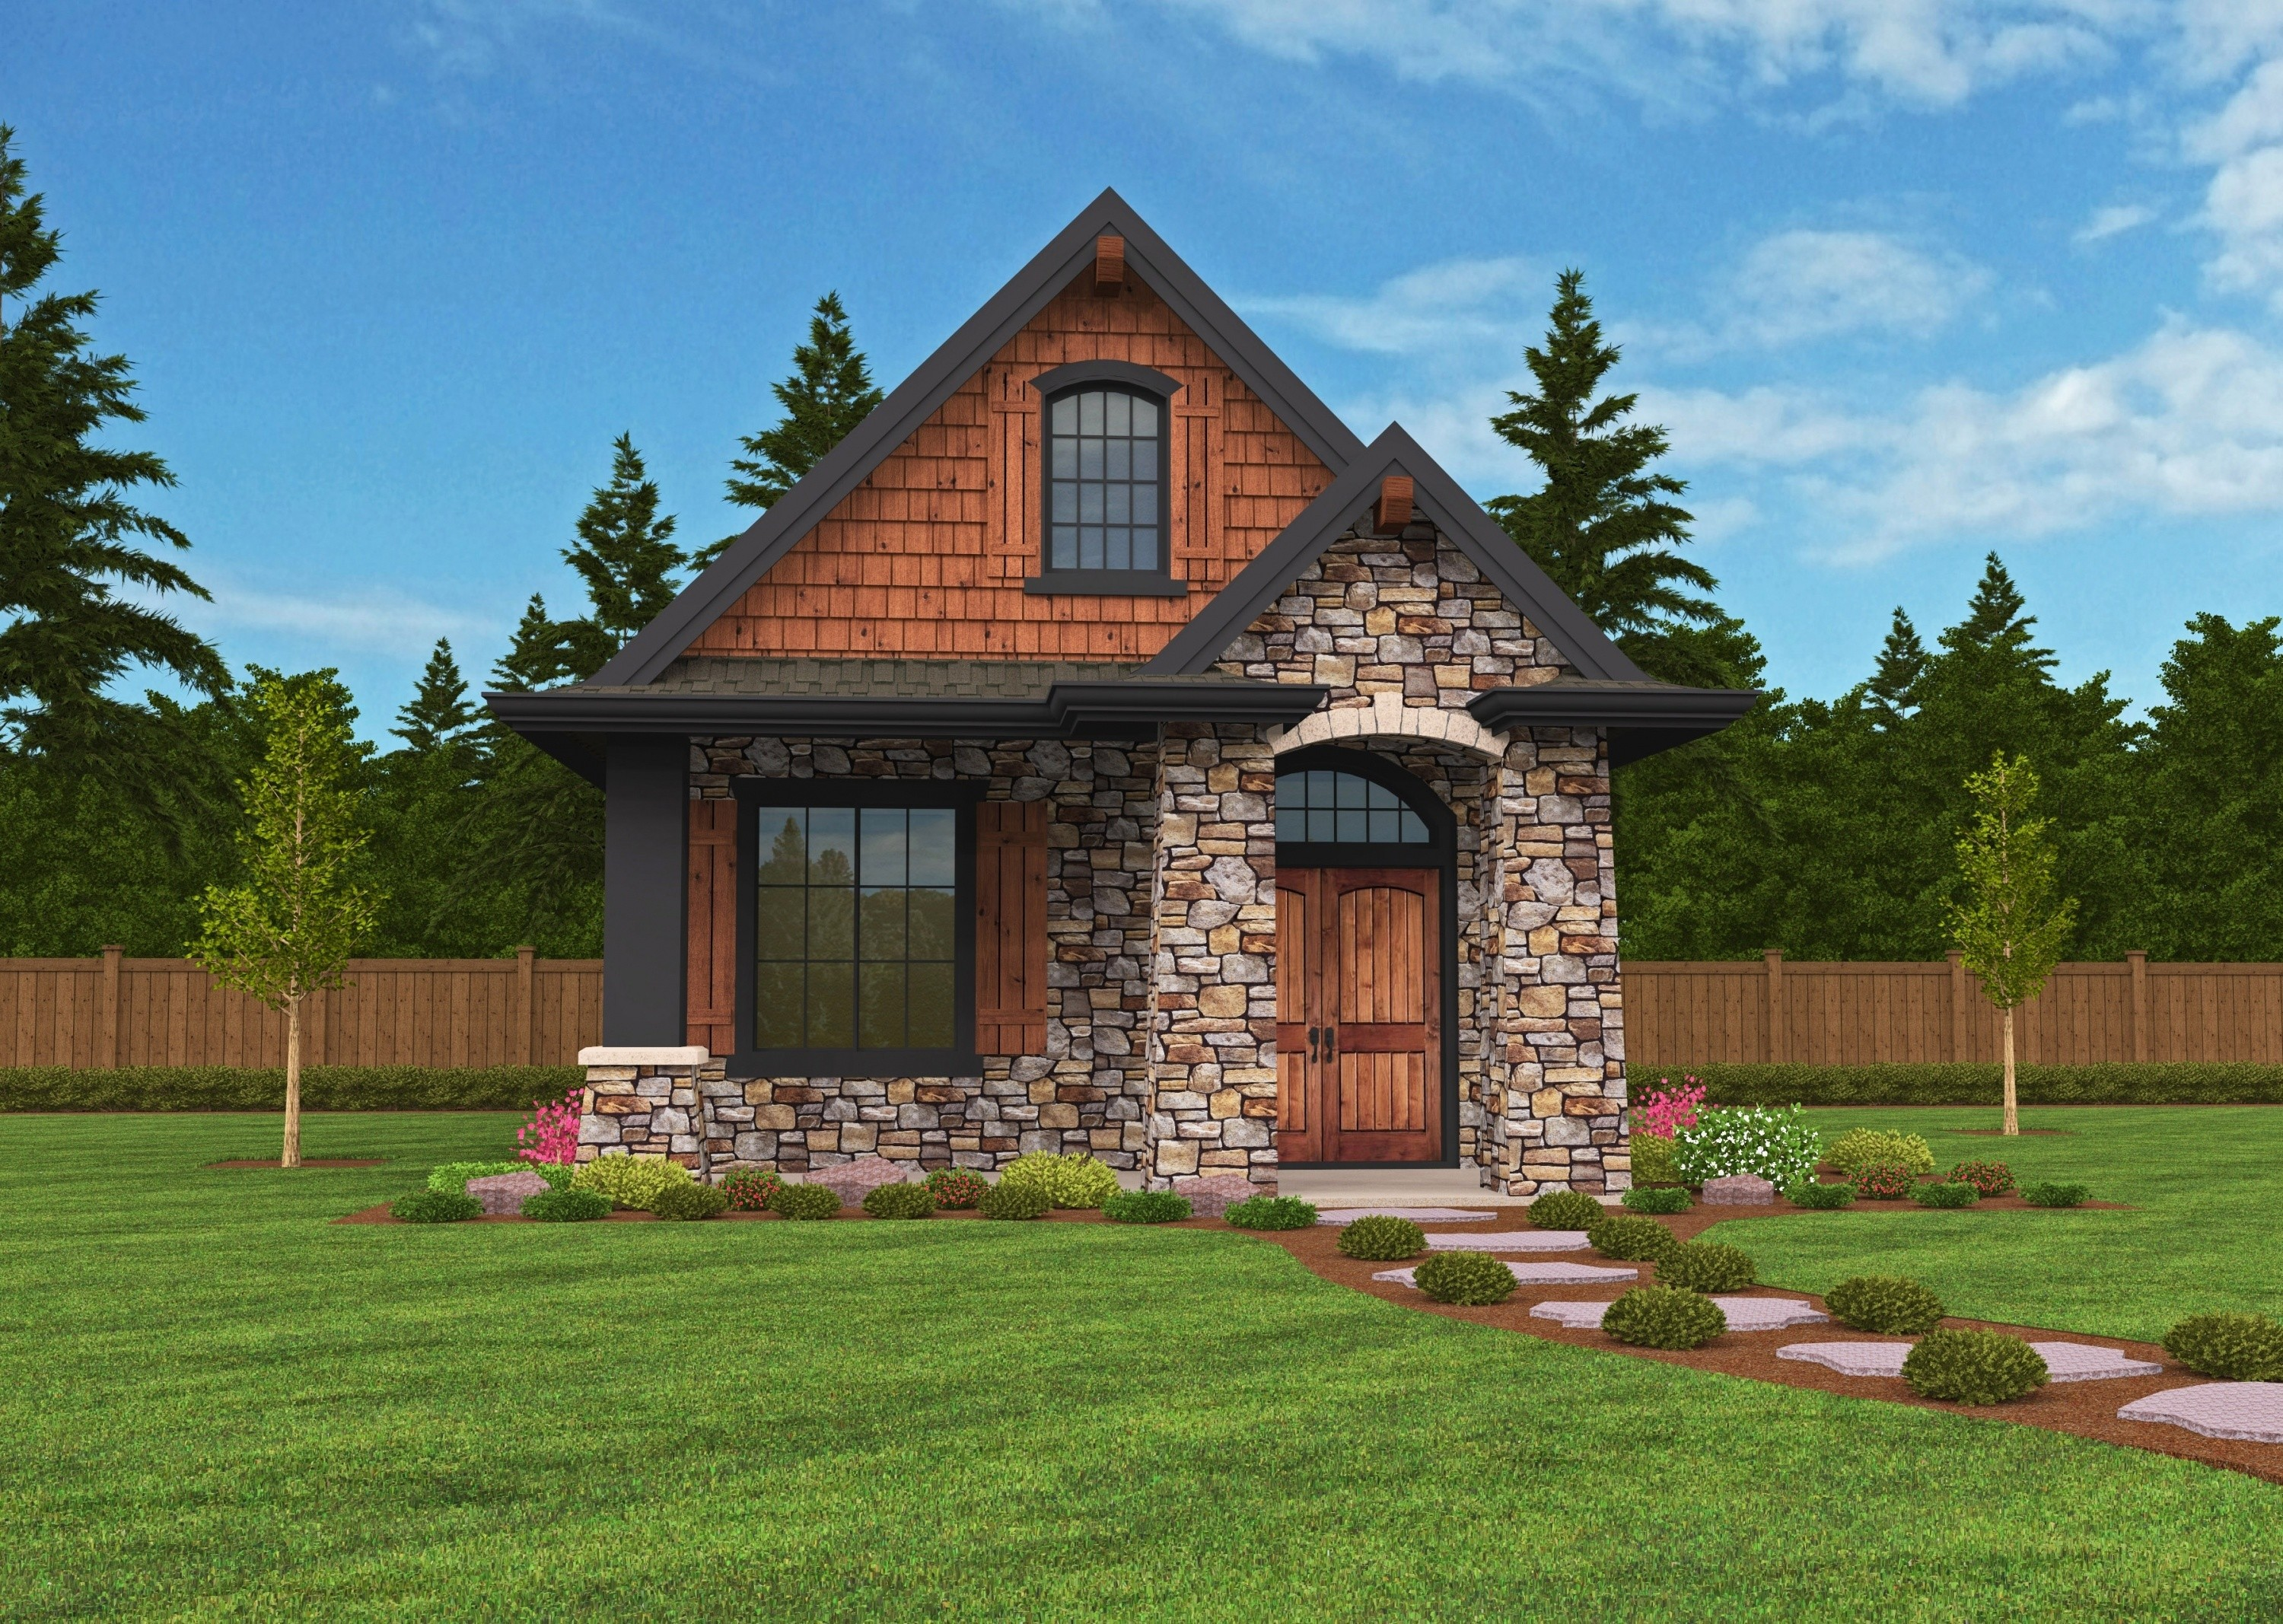 Montana house plan small lodge home design with european for House plan with photos